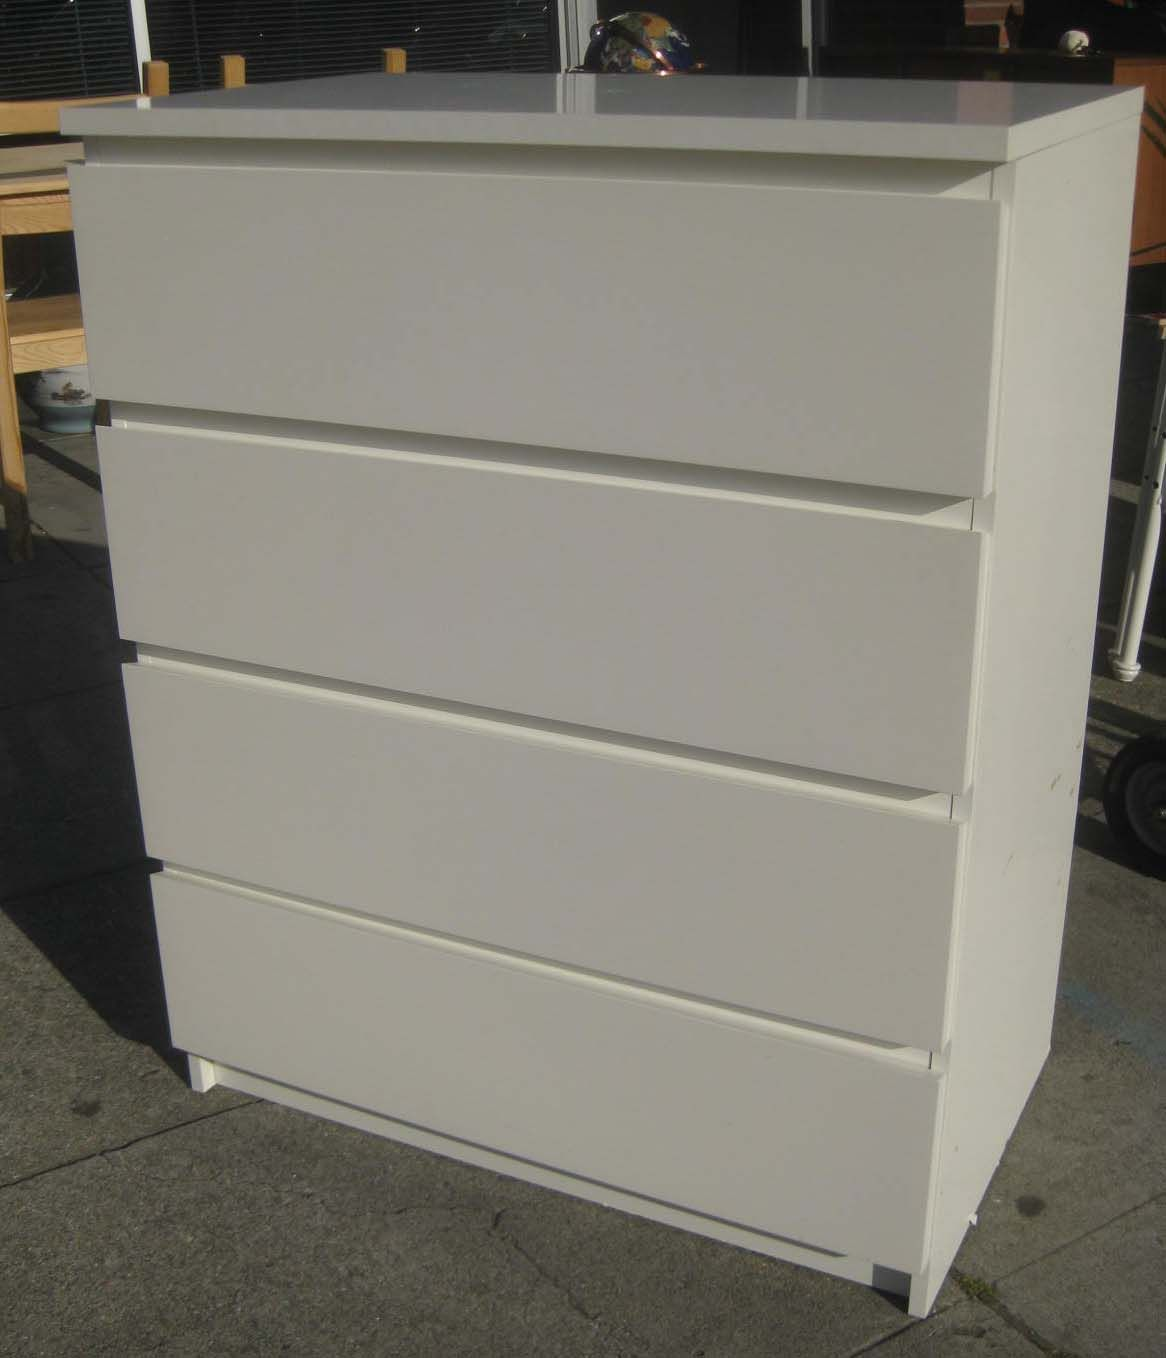 ikea bedroom furniture dressers. White Ikea 2 Drawer Dresser - Home Furniture Design Bedroom Dressers E